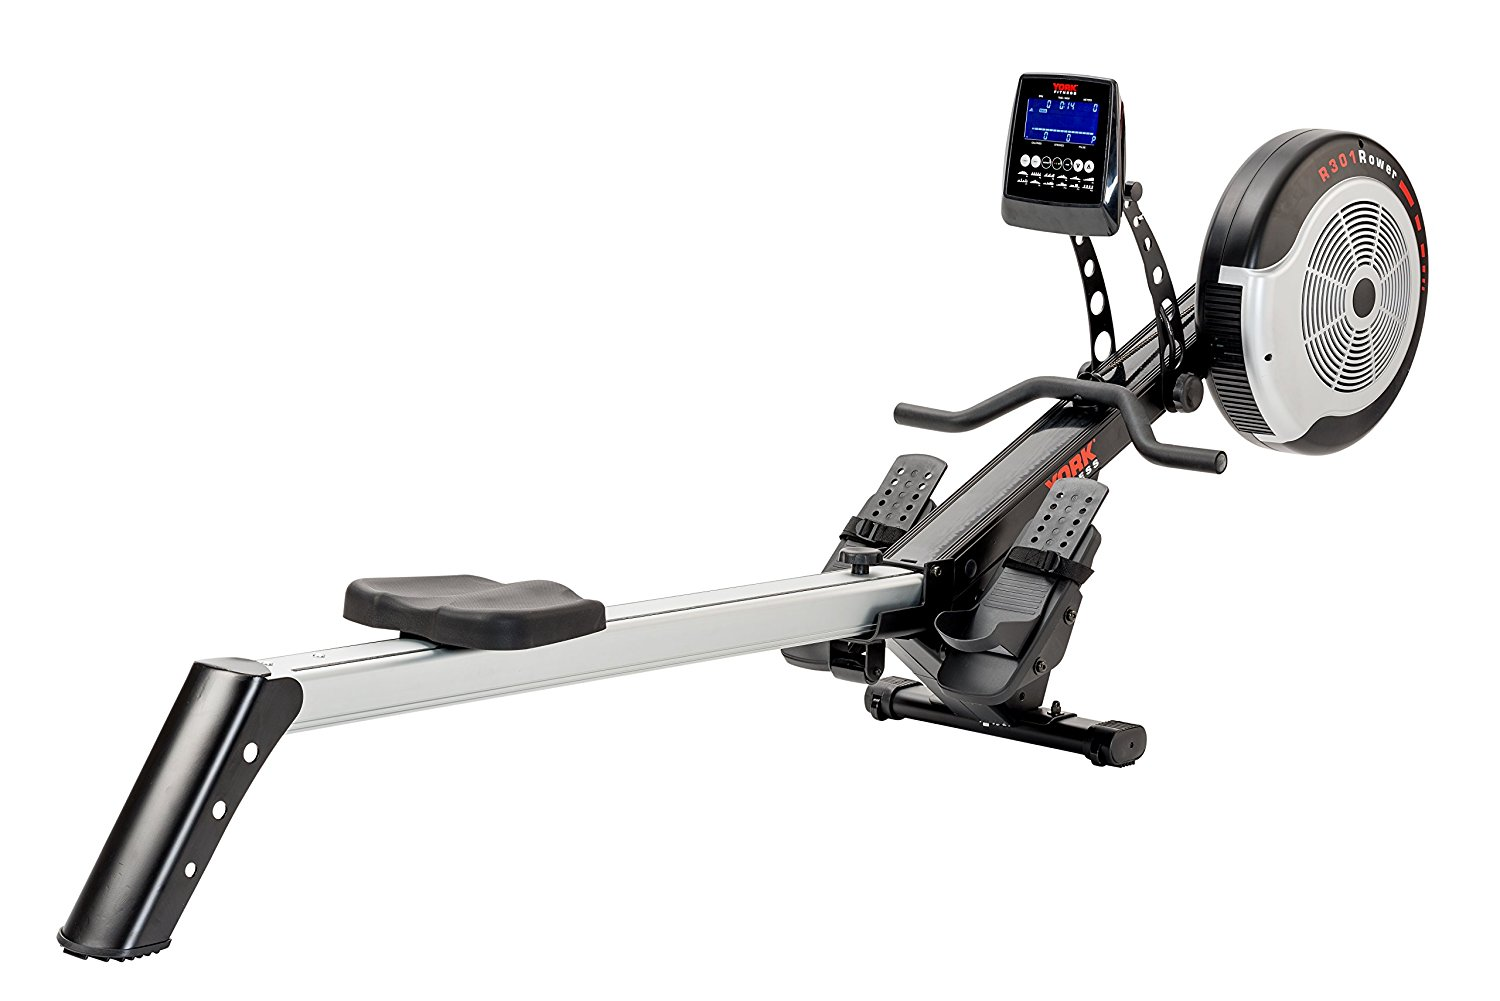 York R301 Platinum Foldable Rowing Machine